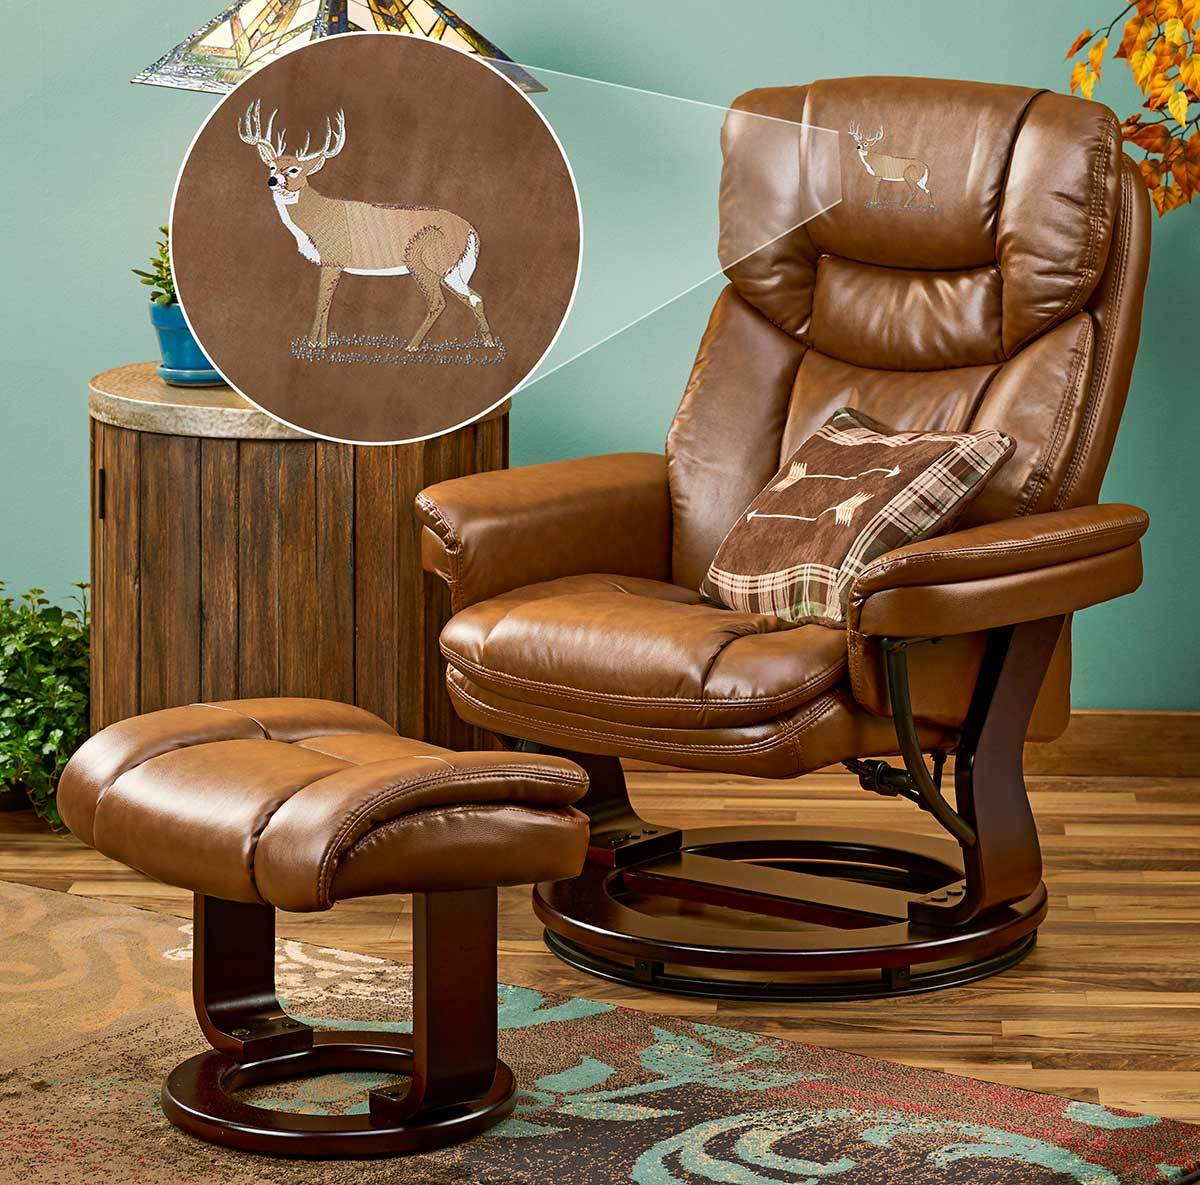 Whitetail Deer Swivel Chair & Stool